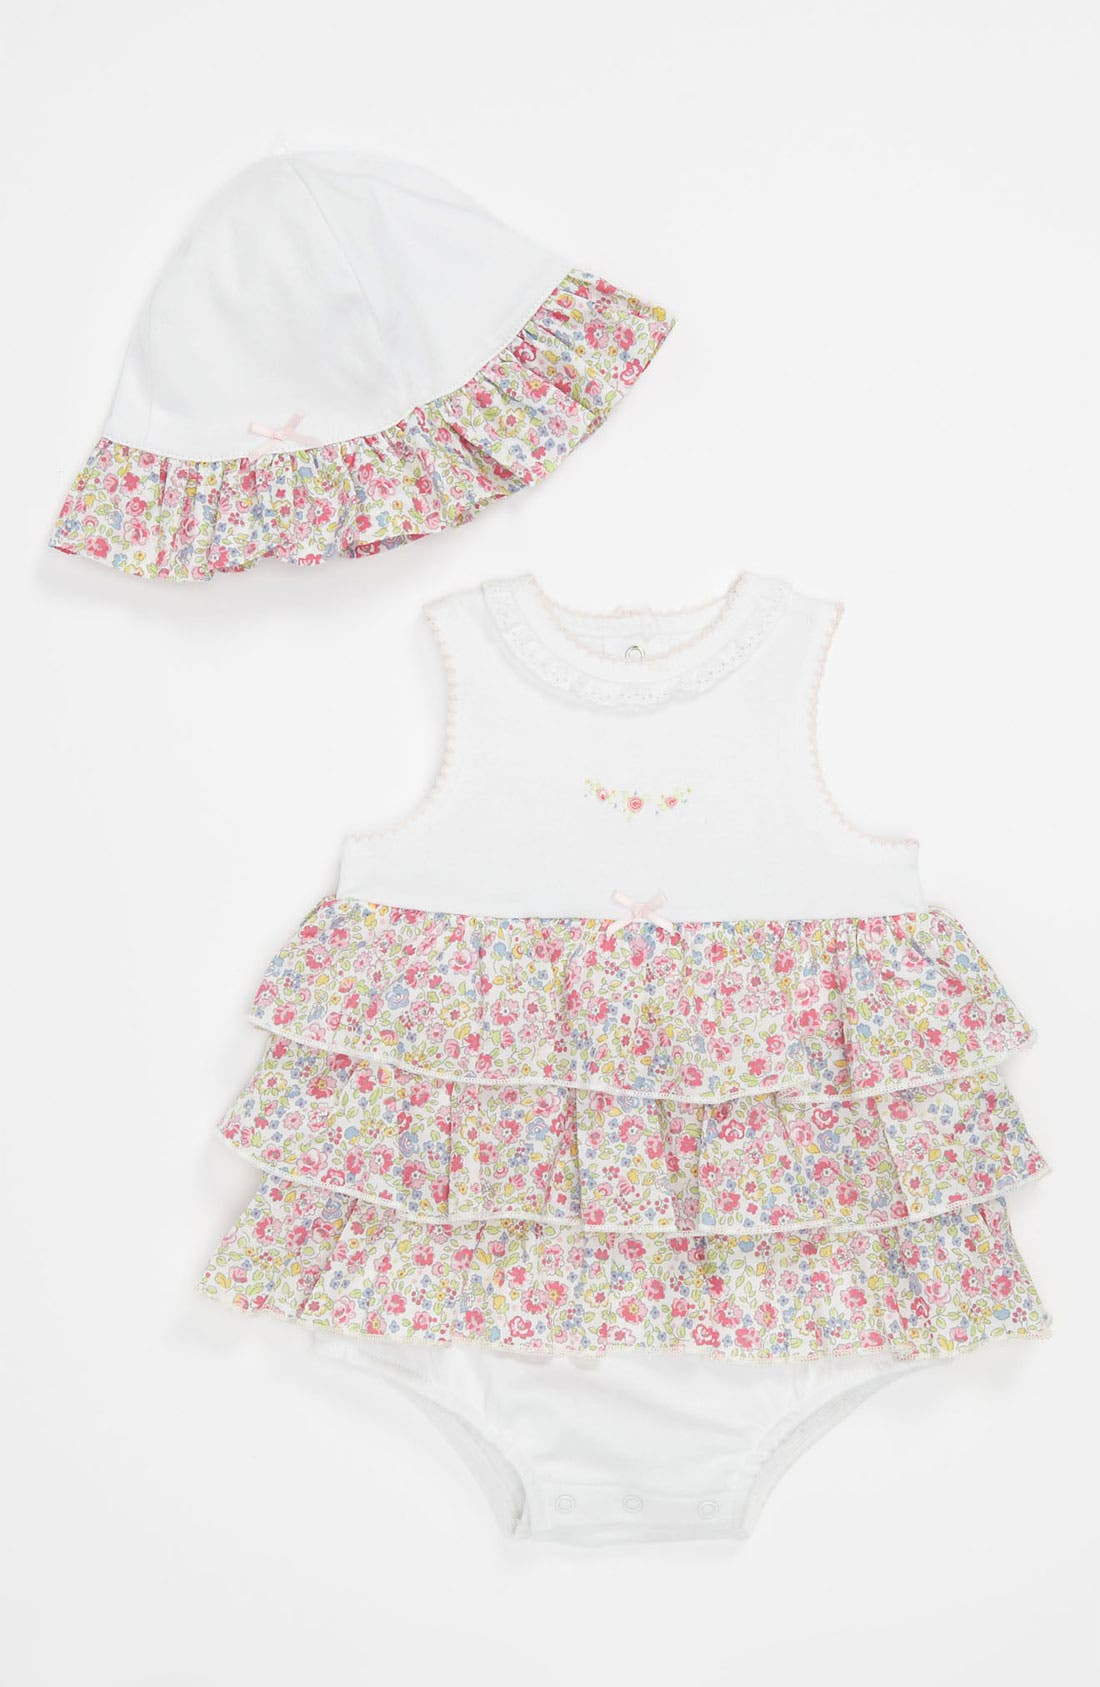 Alternate Image 1 Selected - Little Me 'Blossom' Bodysuit & Hat (Infant)